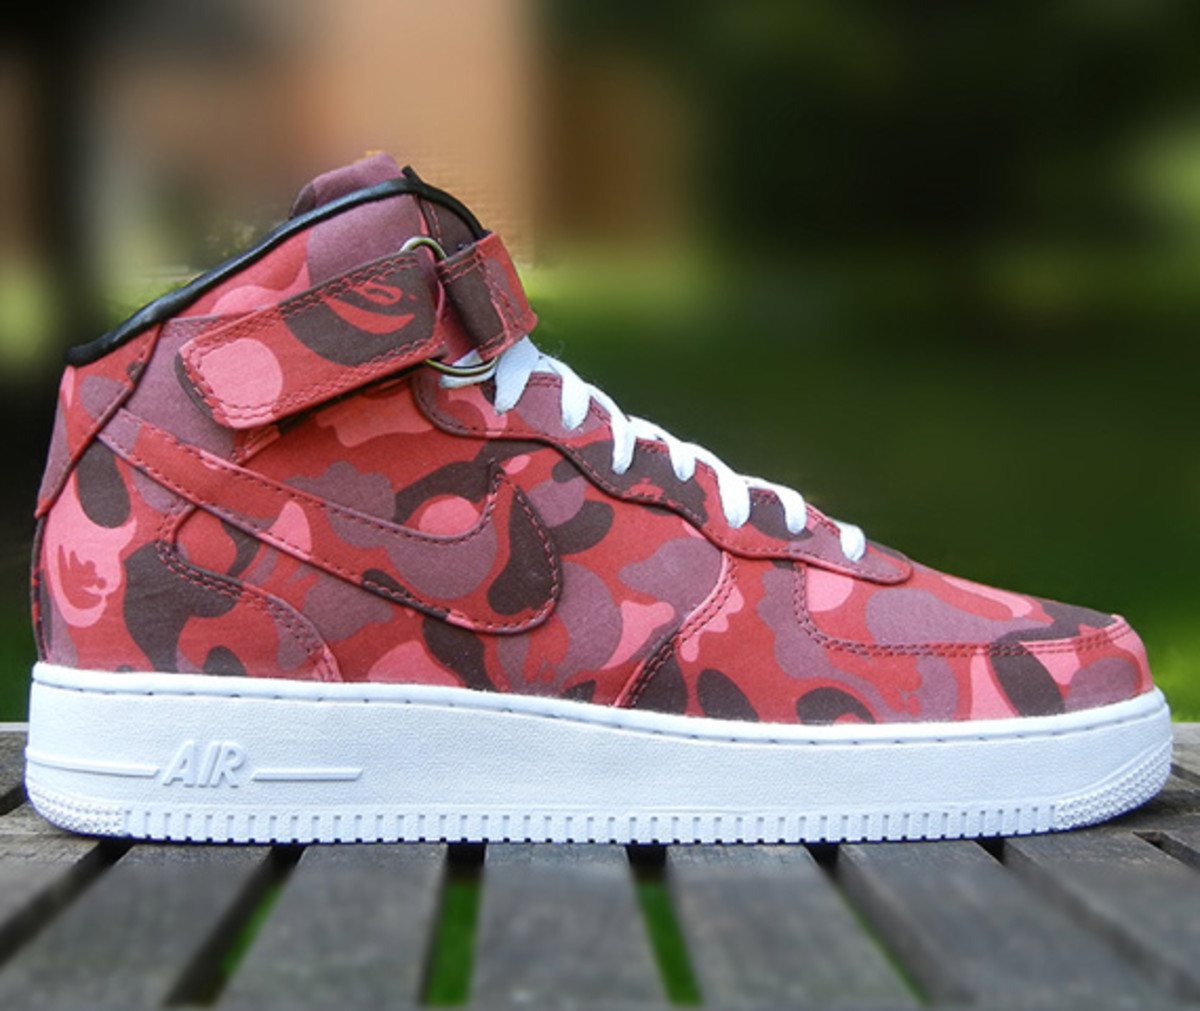 nike-air-force-1-bape-1st-camo-incomparable-custom-by-jbf-customs-05